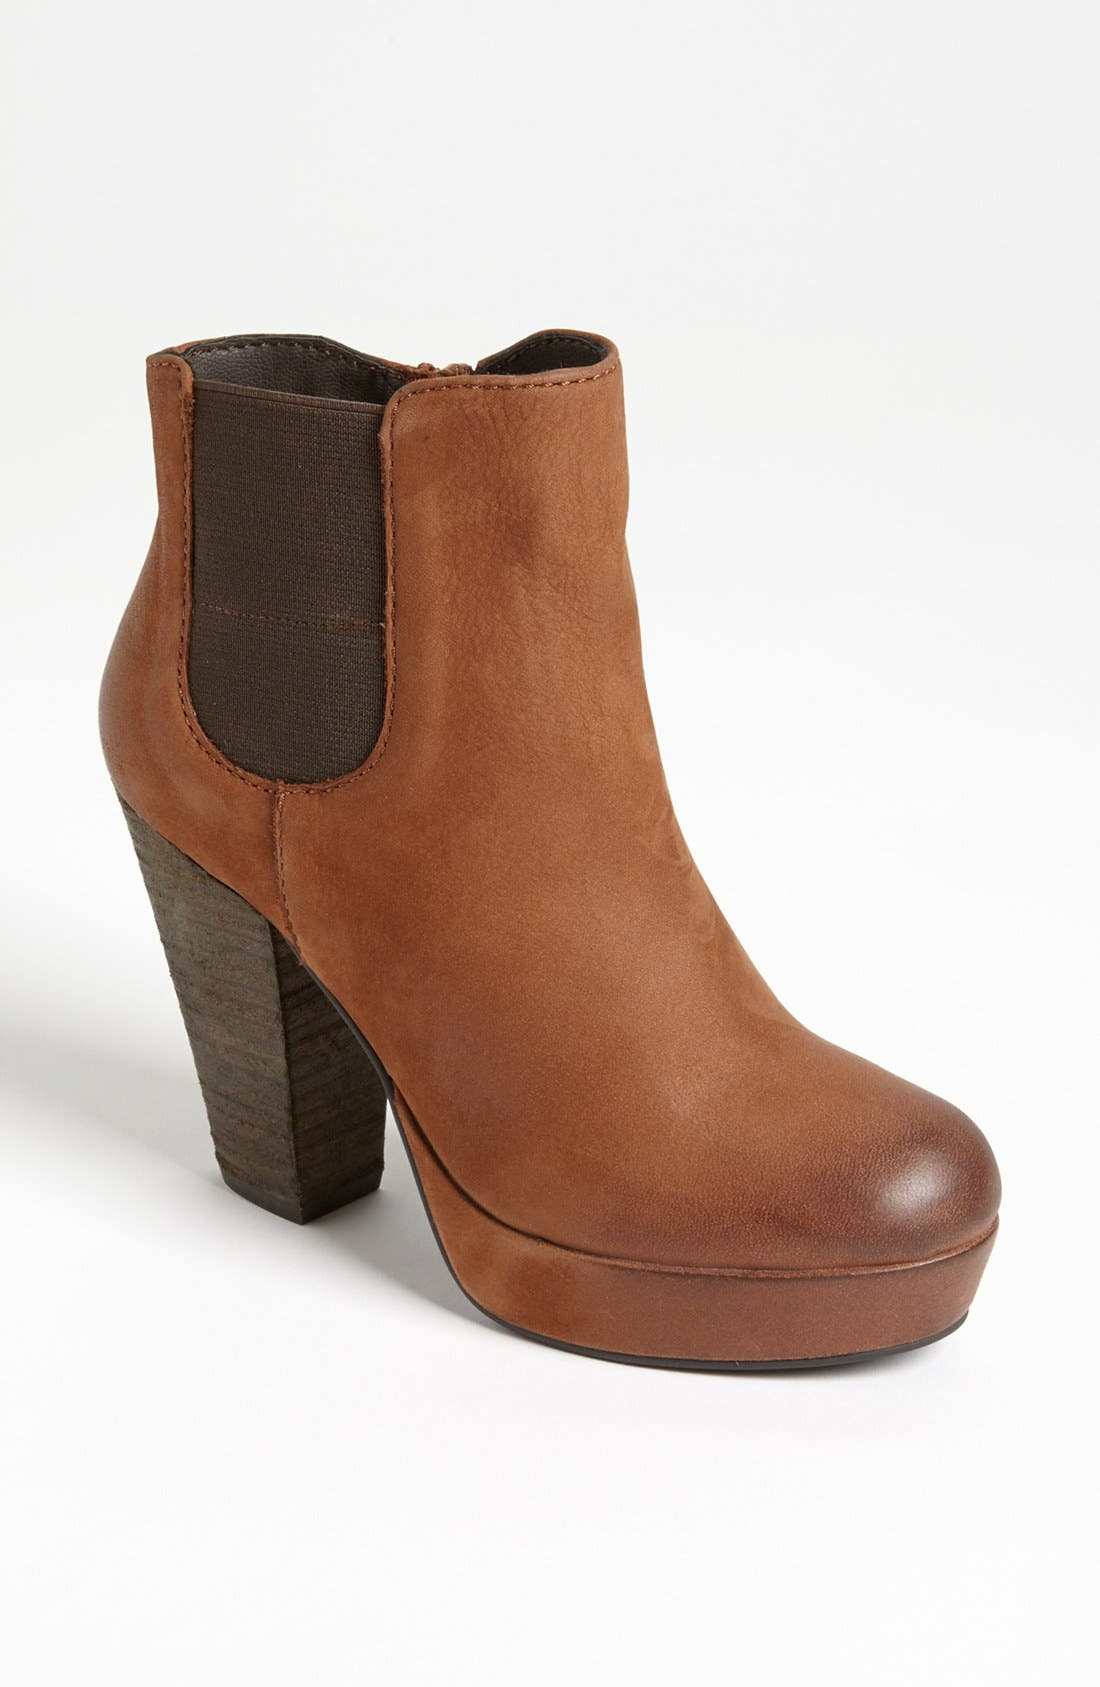 Main Image - Steve Madden 'Ryddlle' Bootie